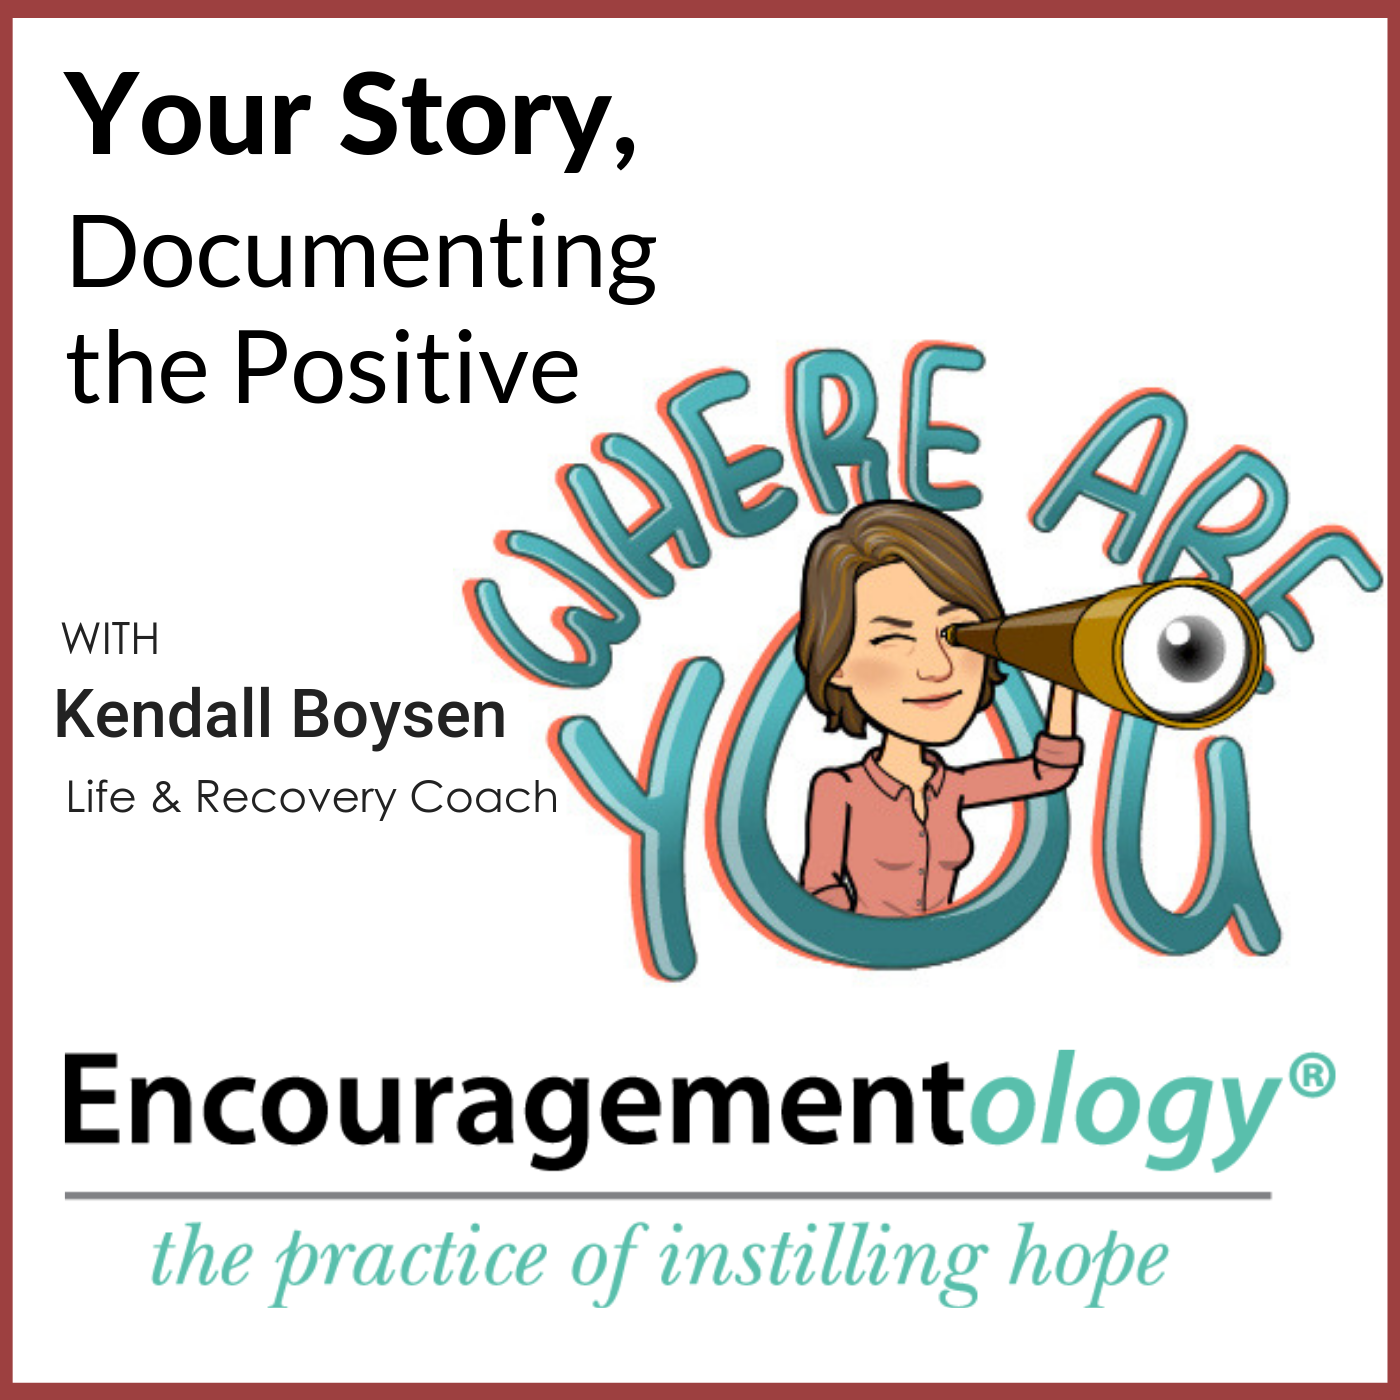 Your Story, Documenting the Positive